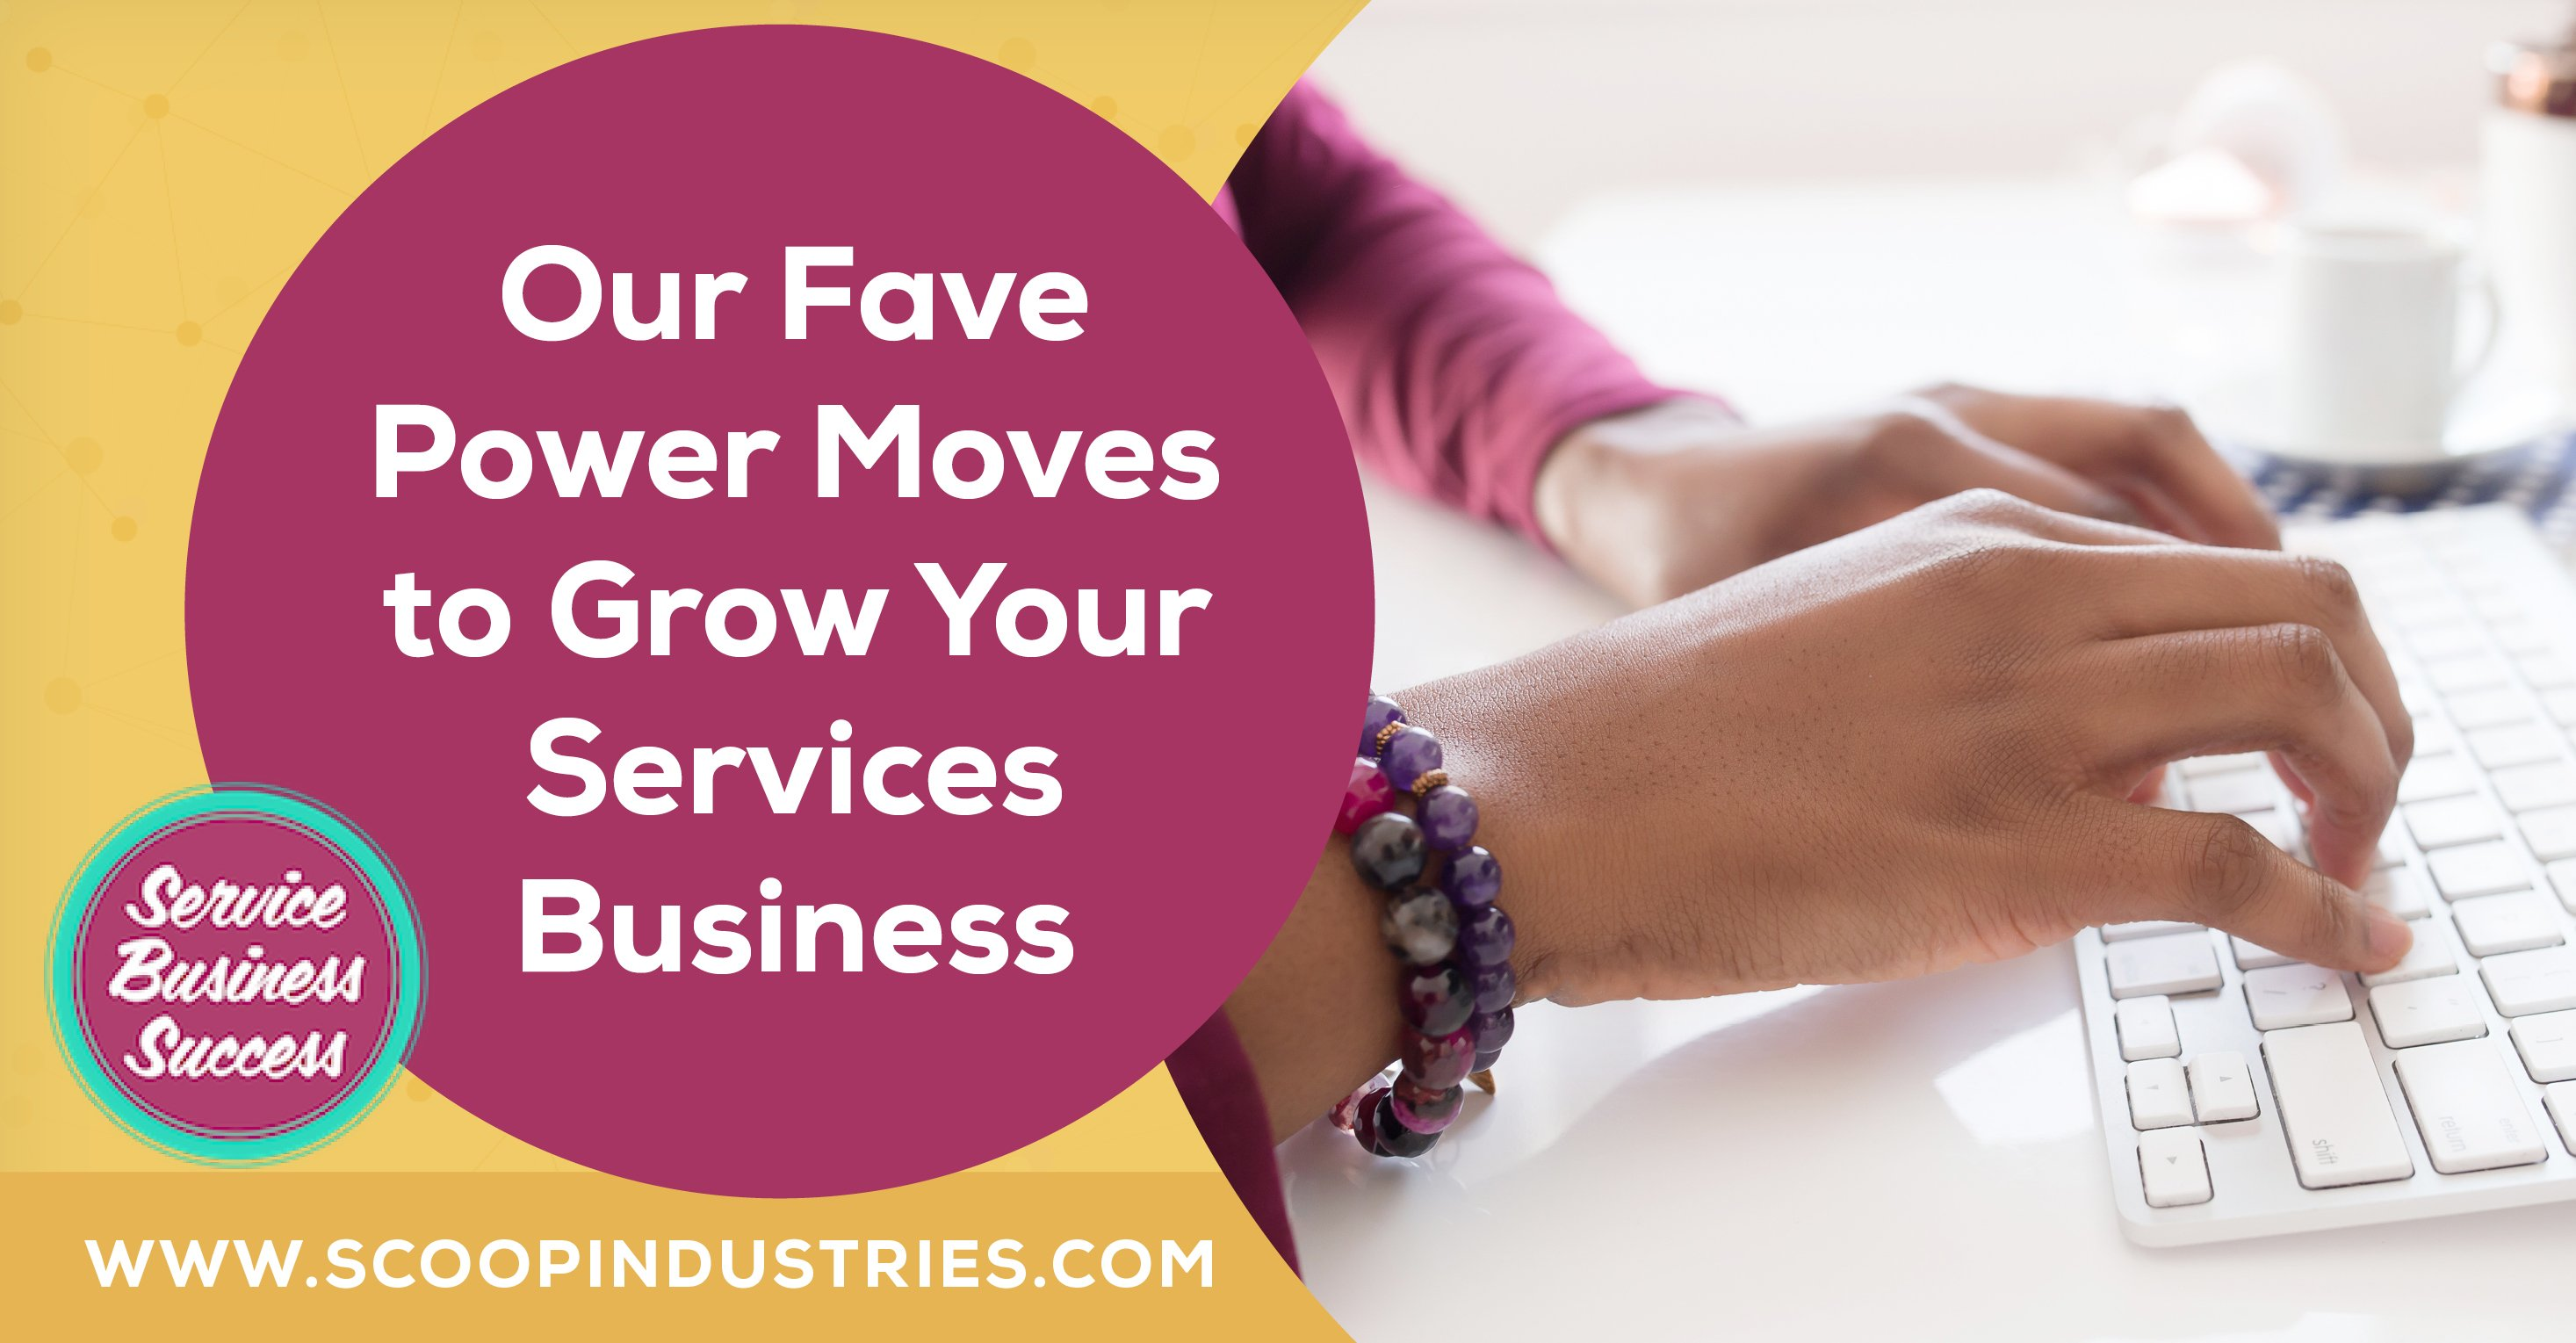 Episode 55: Our Fave Power Moves to Grow Your Services Business